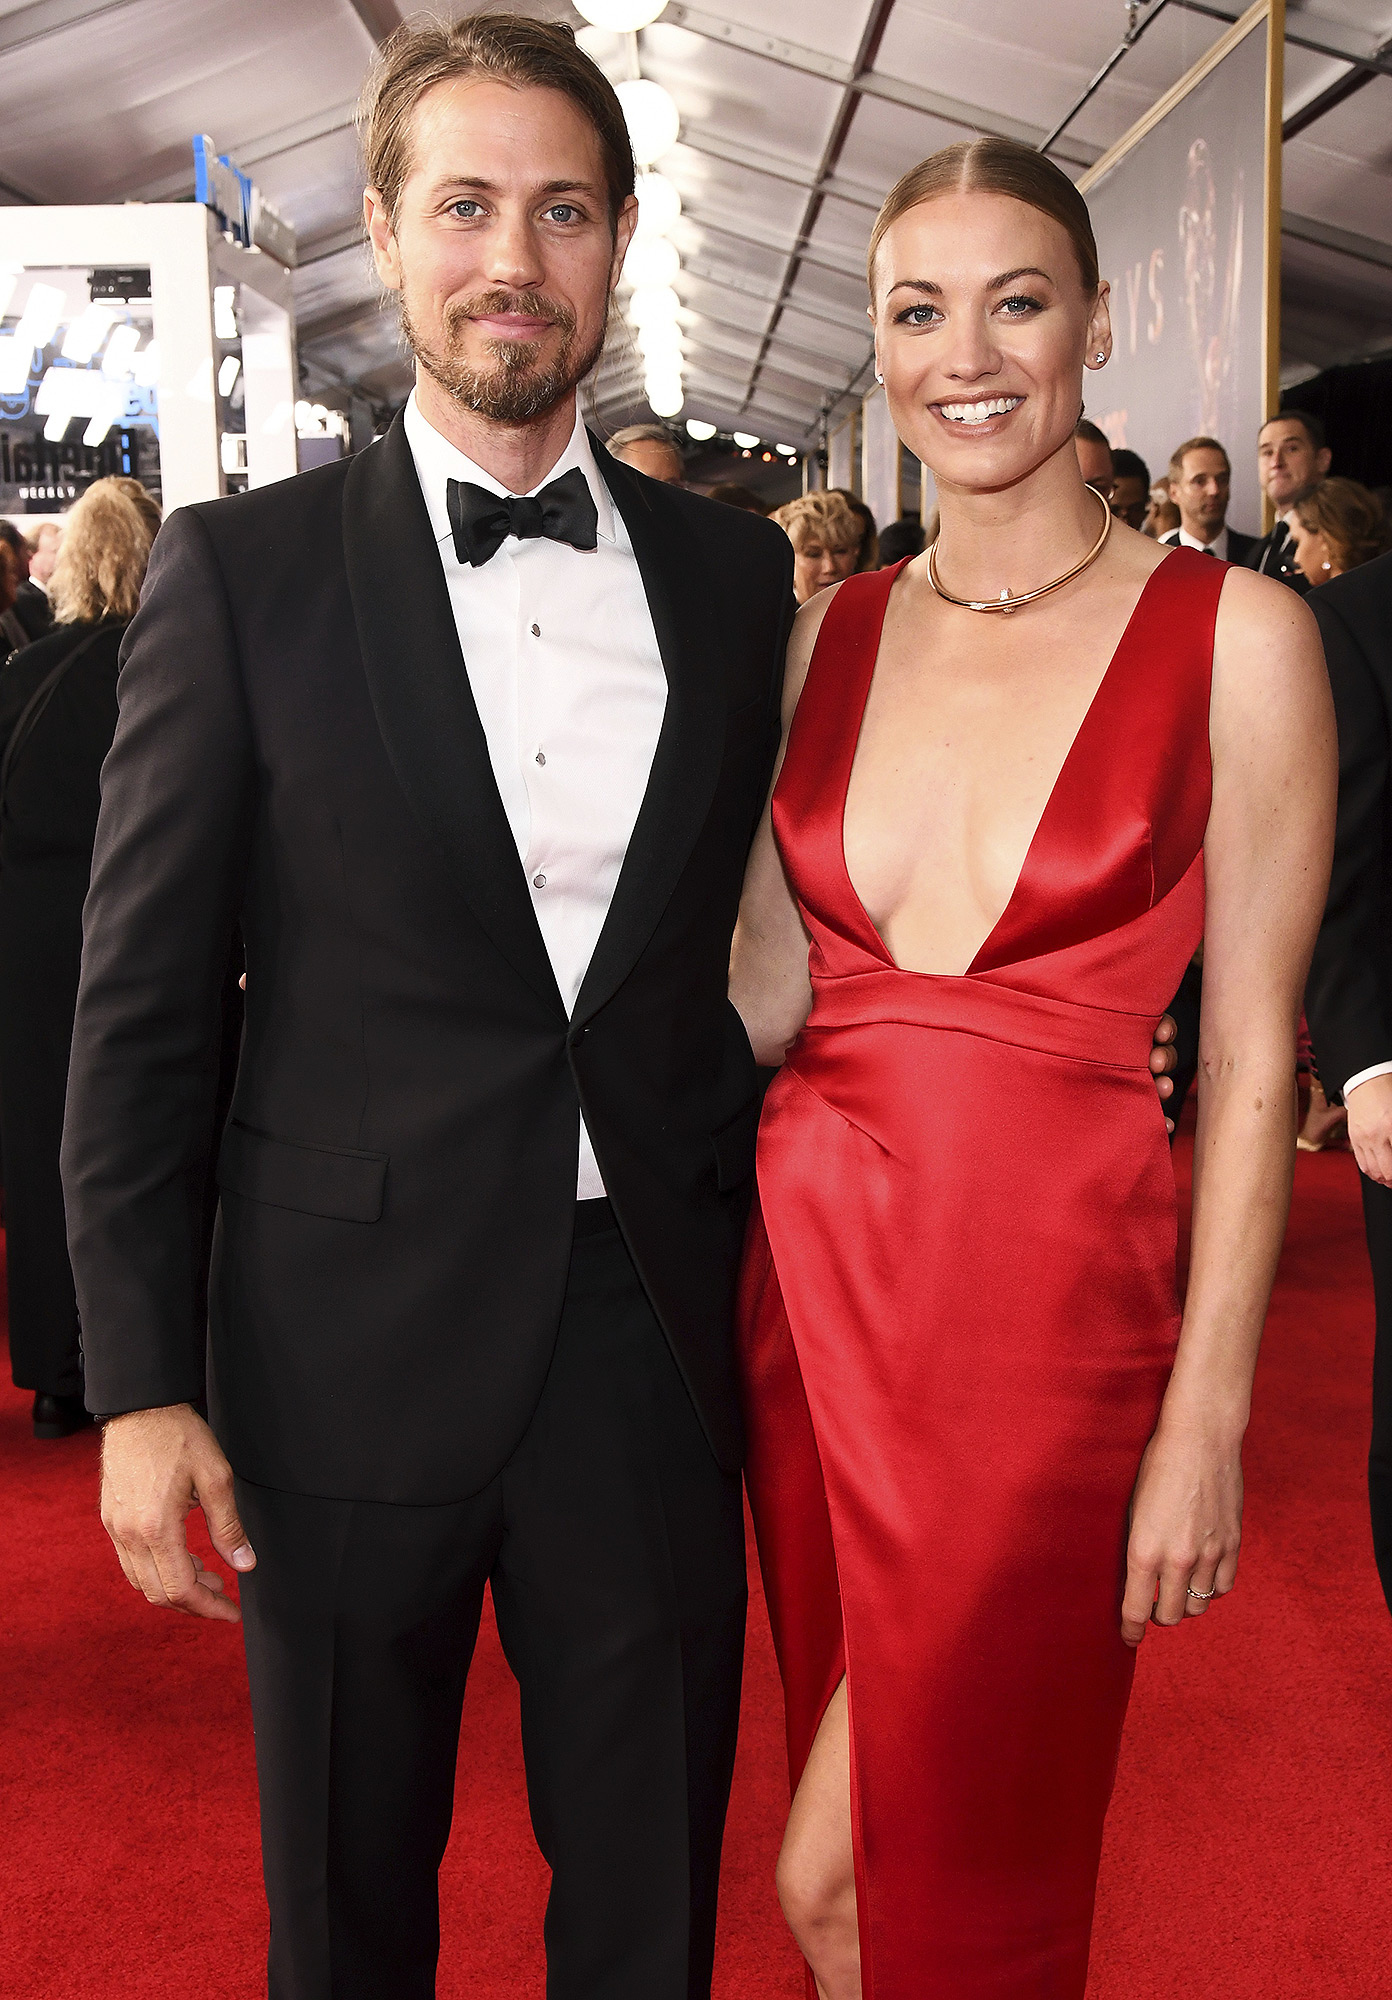 Handmaid S Tale Yvonne Strahovski Reveals She S Married People Com Loden was working primarily in short films before meeting yvonne. handmaid s tale yvonne strahovski reveals she s married people com